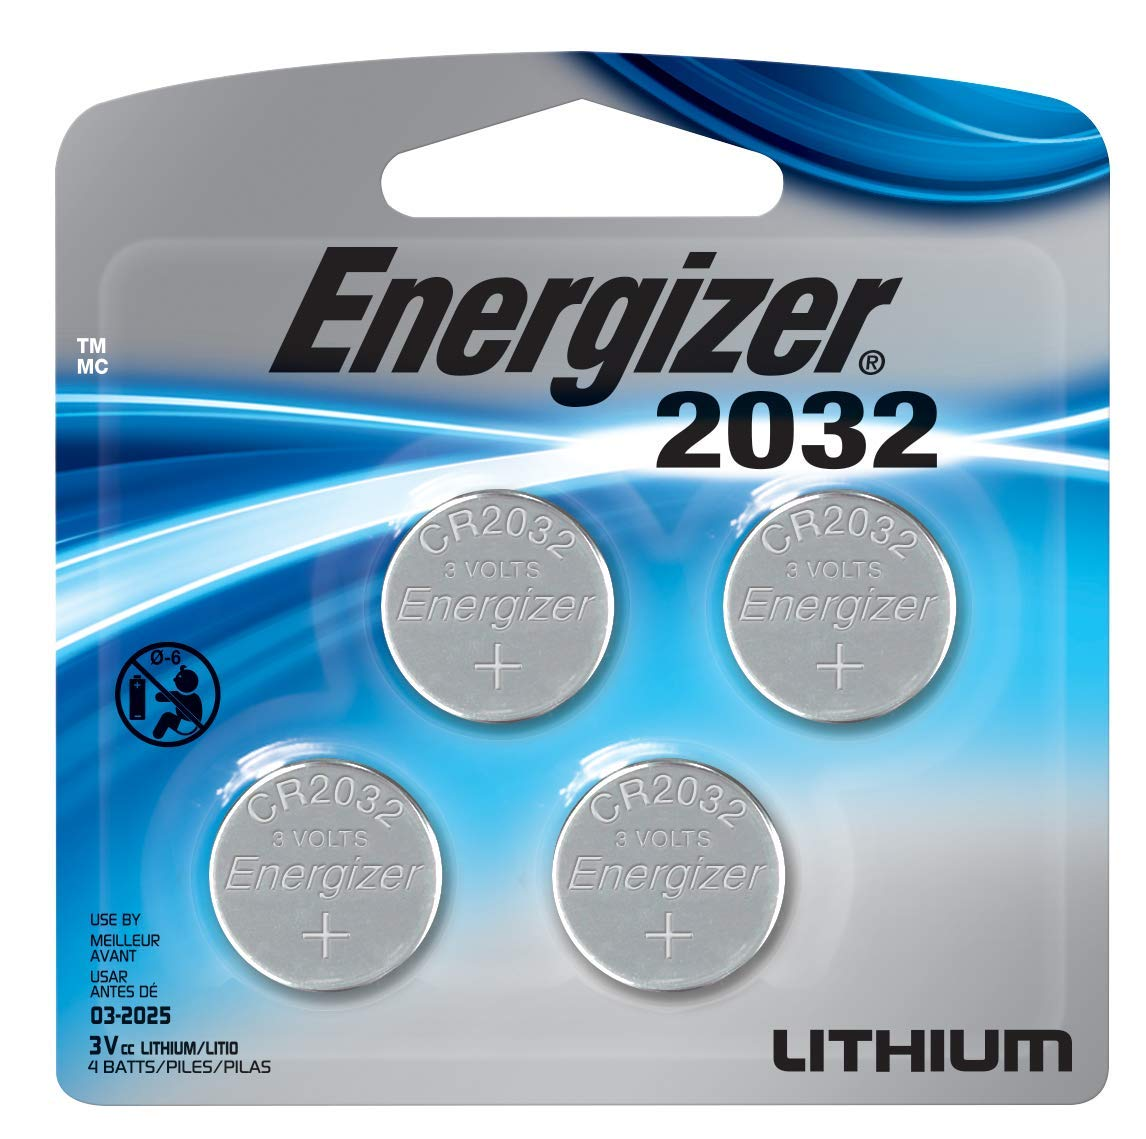 Energizer Cr2032 3 Volt Lithium Coin Battery, 4 Count product image